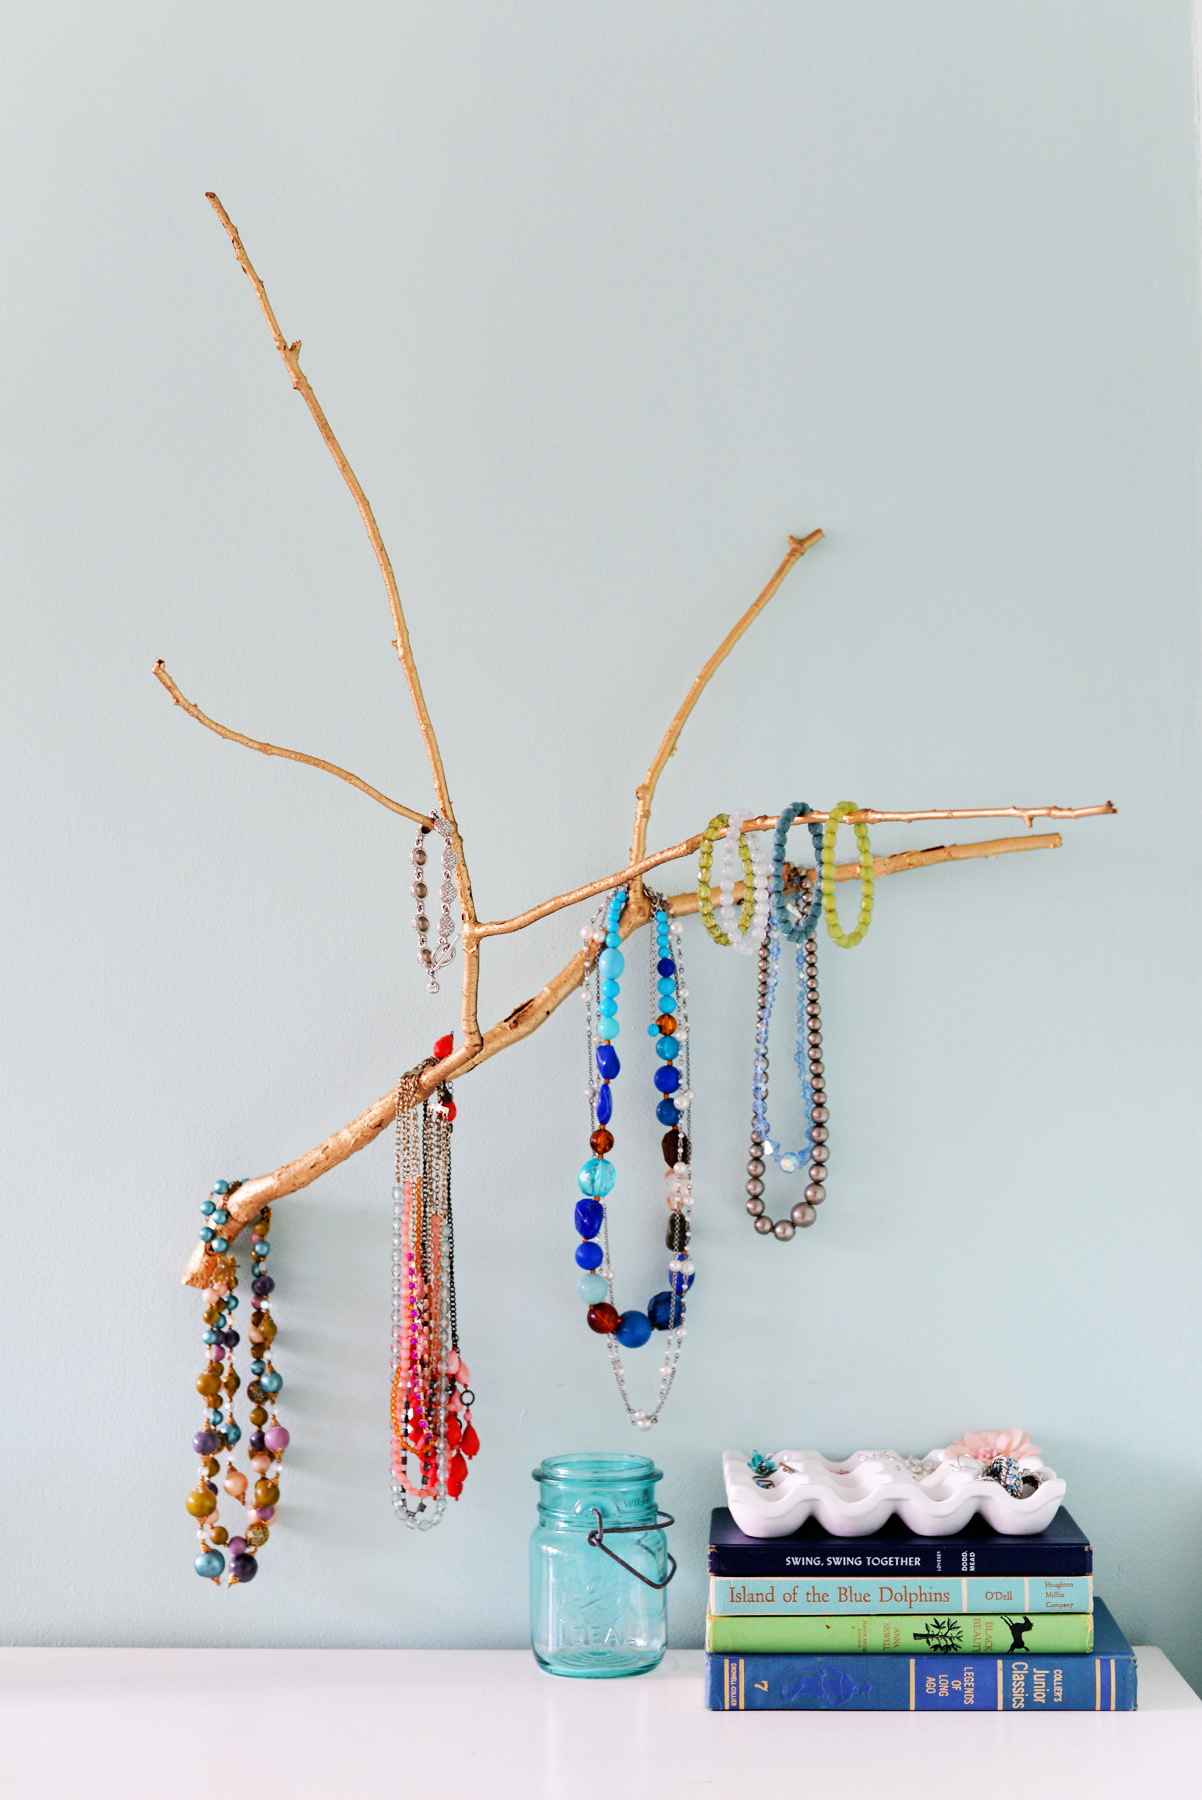 Tree Branch Jewelry Holder : branch, jewelry, holder, Jewelry, Holder, Branch